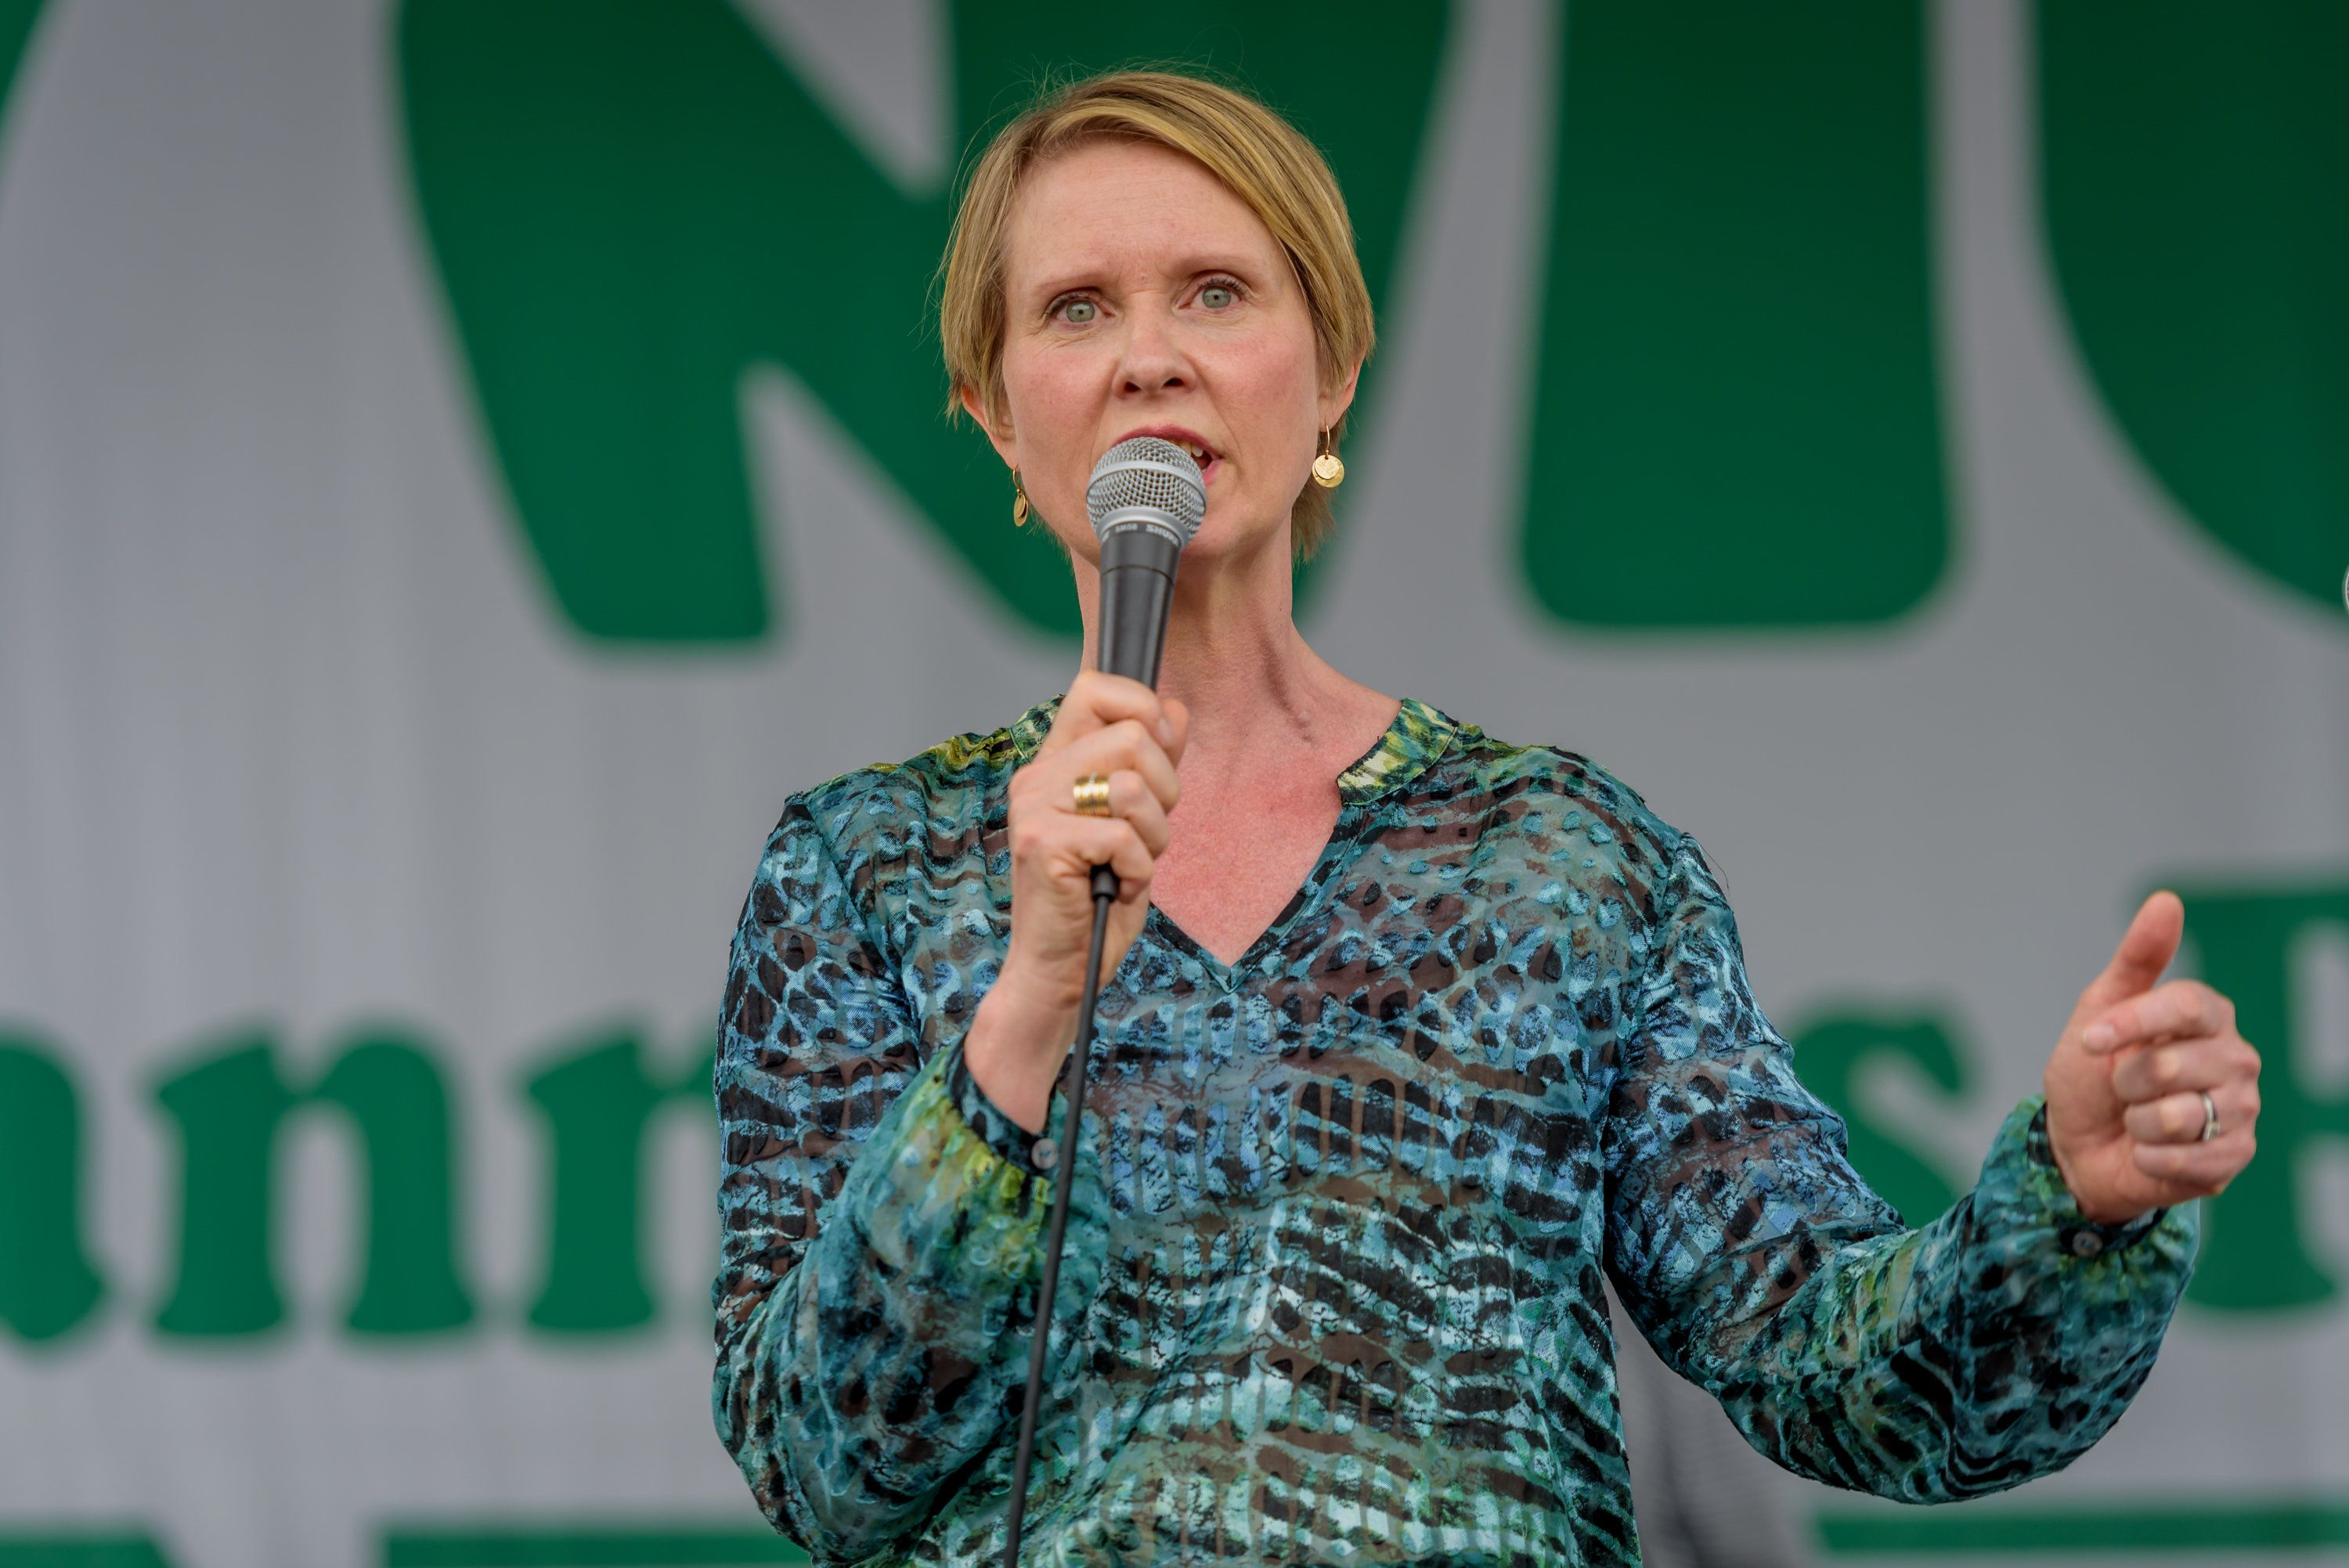 UNION SQUARE PARK, NEW YORK, UNITED STATES - 2018/05/05: Cynthia Nixon, a candidate running for governor - The NYC Cannabis Parade and Rally, New Yorks longest running annual pro-cannabis demonstration, returned for its 47th year. The event started in Midtown Manhattan and marched to Union Square Park for an afternoon rally, with a powerful roster of elected officials, including two state legislators and three City Council Members, speaking from stages in Midtown and Union Square Park throughout the day. (Photo by Erik McGregor/Pacific Press/LightRocket via Getty Images)